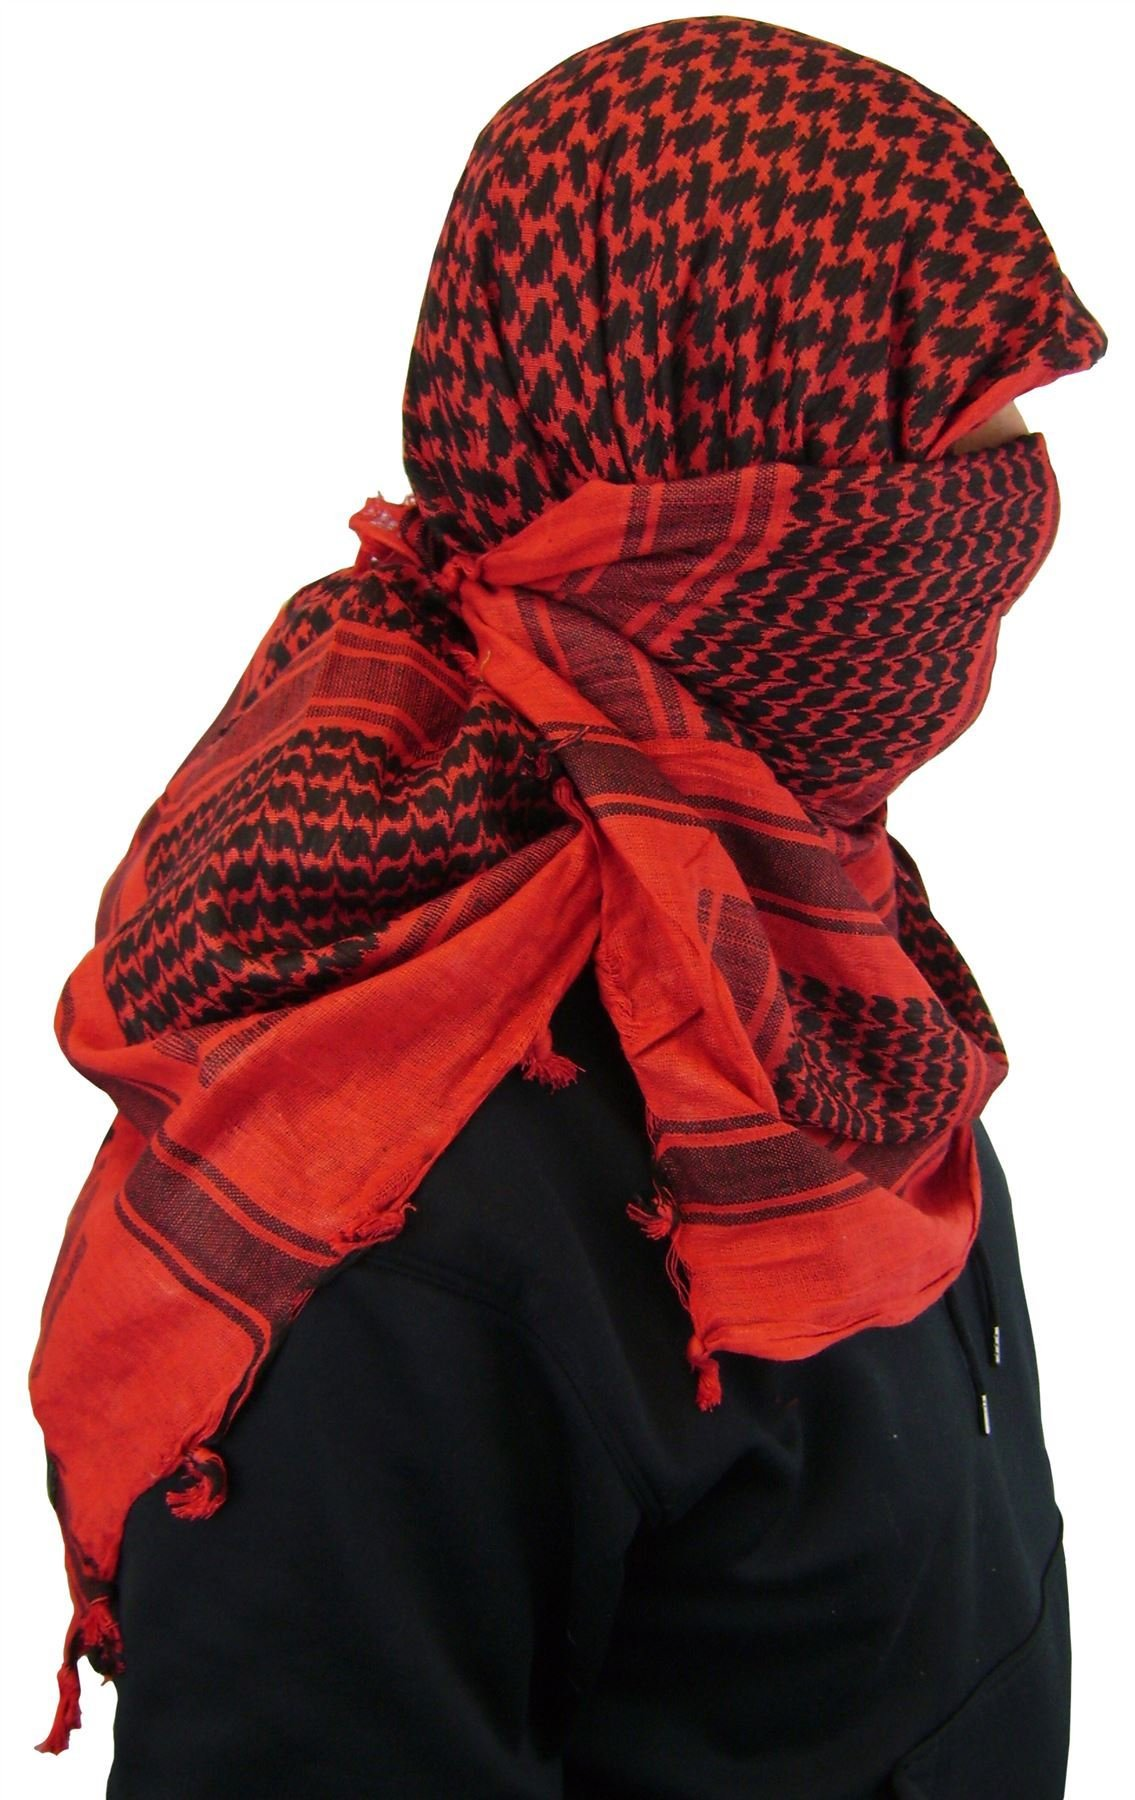 Maddog Sports Shemagh Tactical Desert Scarf - Red / Black by MAddog